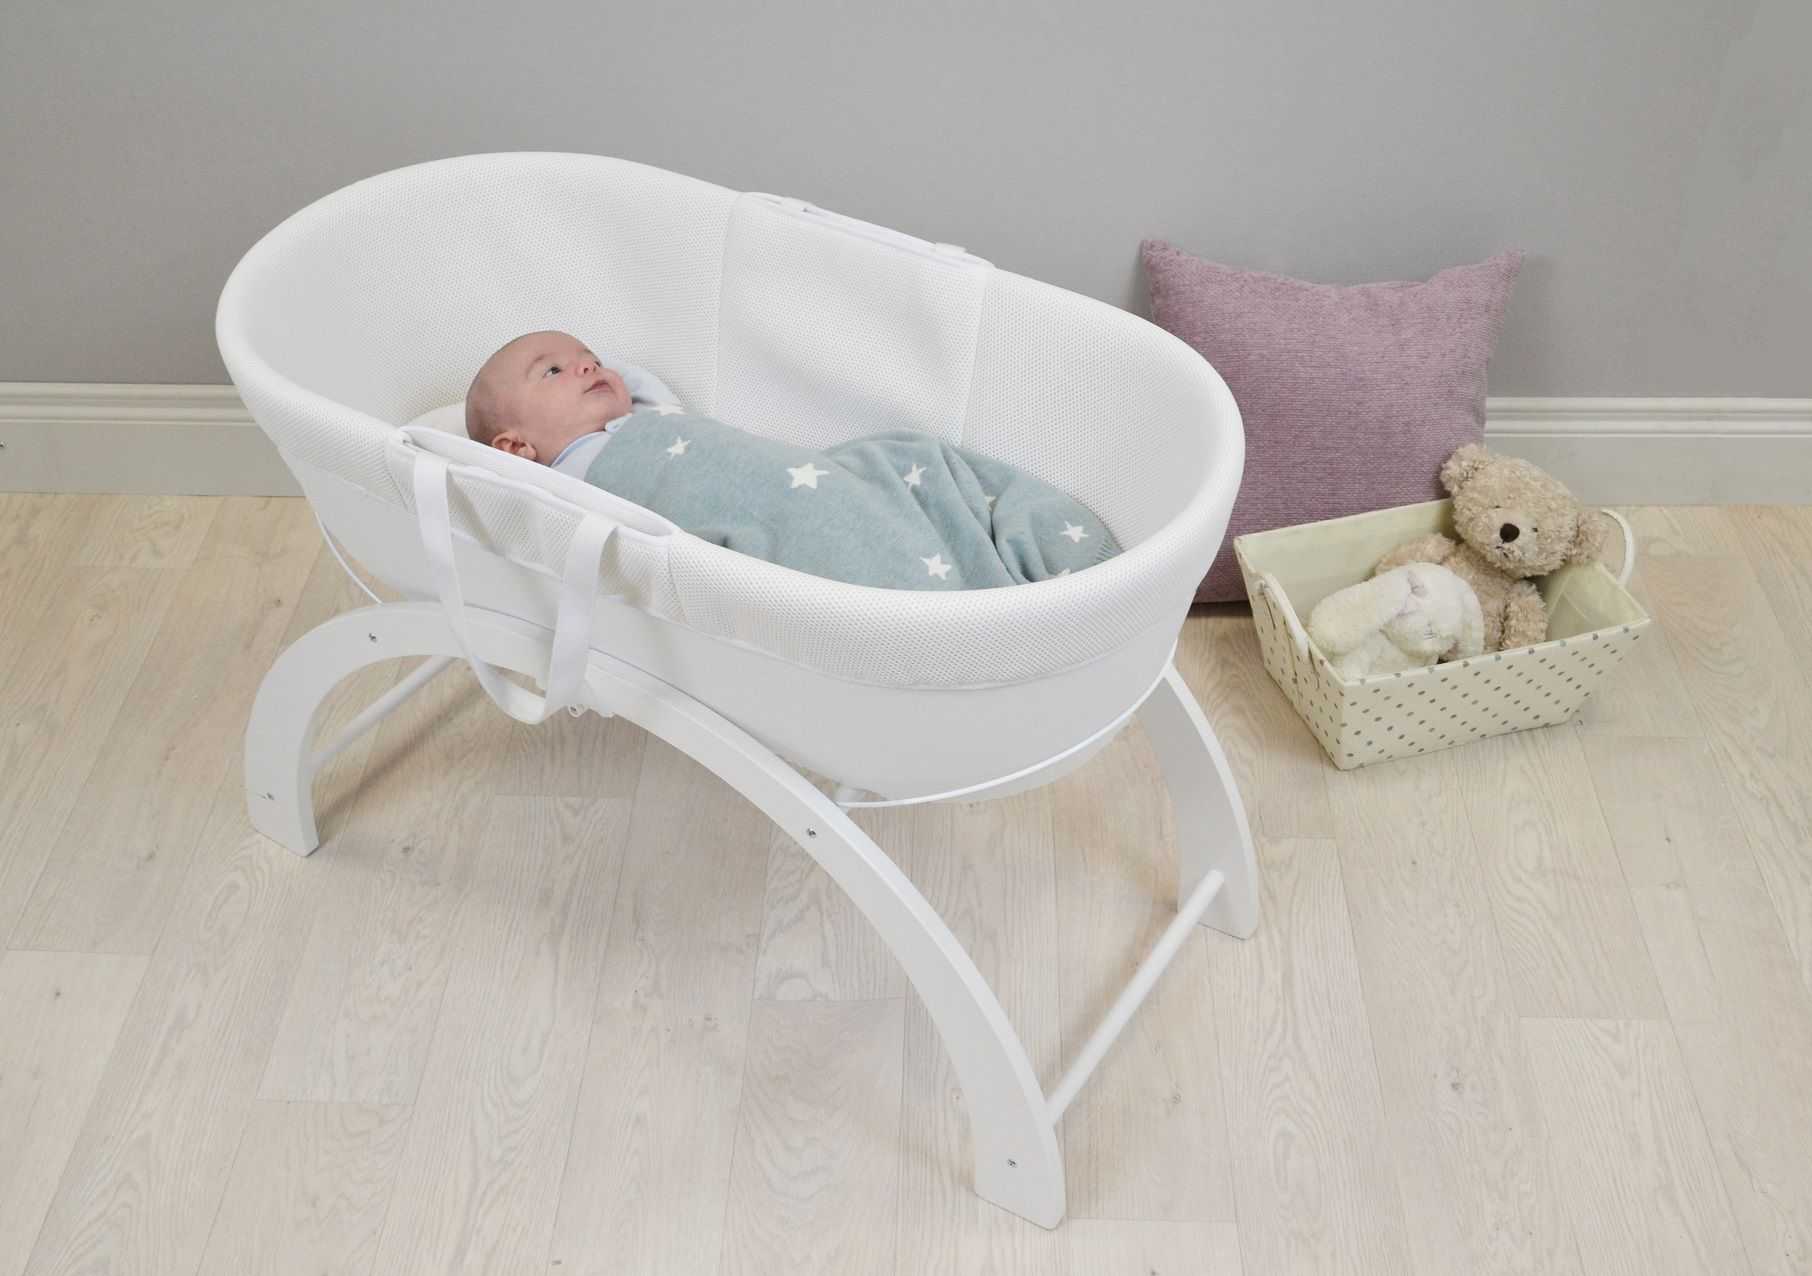 The Dreami Sleep System in WHITE - 3D mesh breathable fabric, hypoallergenic wicker-less base, multi function stand - RRP £129.99